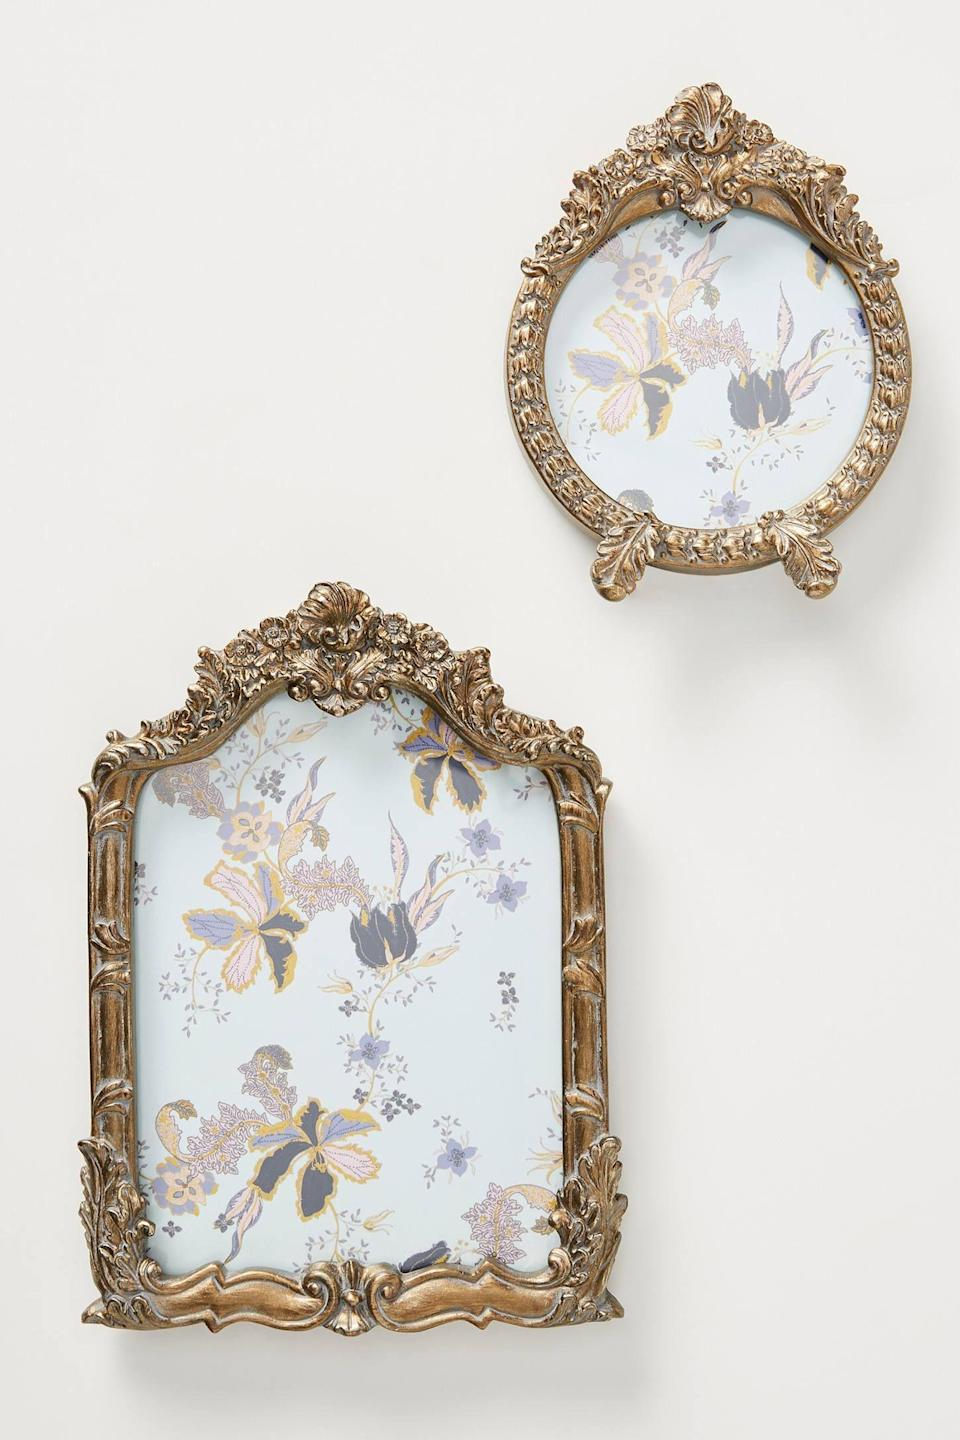 """<p><strong>Anthropologie</strong></p><p>anthropologie.com</p><p><strong>$19.50</strong></p><p><a href=""""https://go.redirectingat.com?id=74968X1596630&url=https%3A%2F%2Fwww.anthropologie.com%2Fshop%2Fvictoria-frame&sref=https%3A%2F%2Fwww.housebeautiful.com%2Fentertaining%2Fholidays-celebrations%2Fg4092%2Fvalentines-day-gifts-for-her%2F"""" rel=""""nofollow noopener"""" target=""""_blank"""" data-ylk=""""slk:BUY NOW"""" class=""""link rapid-noclick-resp"""">BUY NOW</a></p><p>Fill a gorgeous frame like these with your favorite picture of the two of you for a winning gift she'll treasure forever. </p>"""